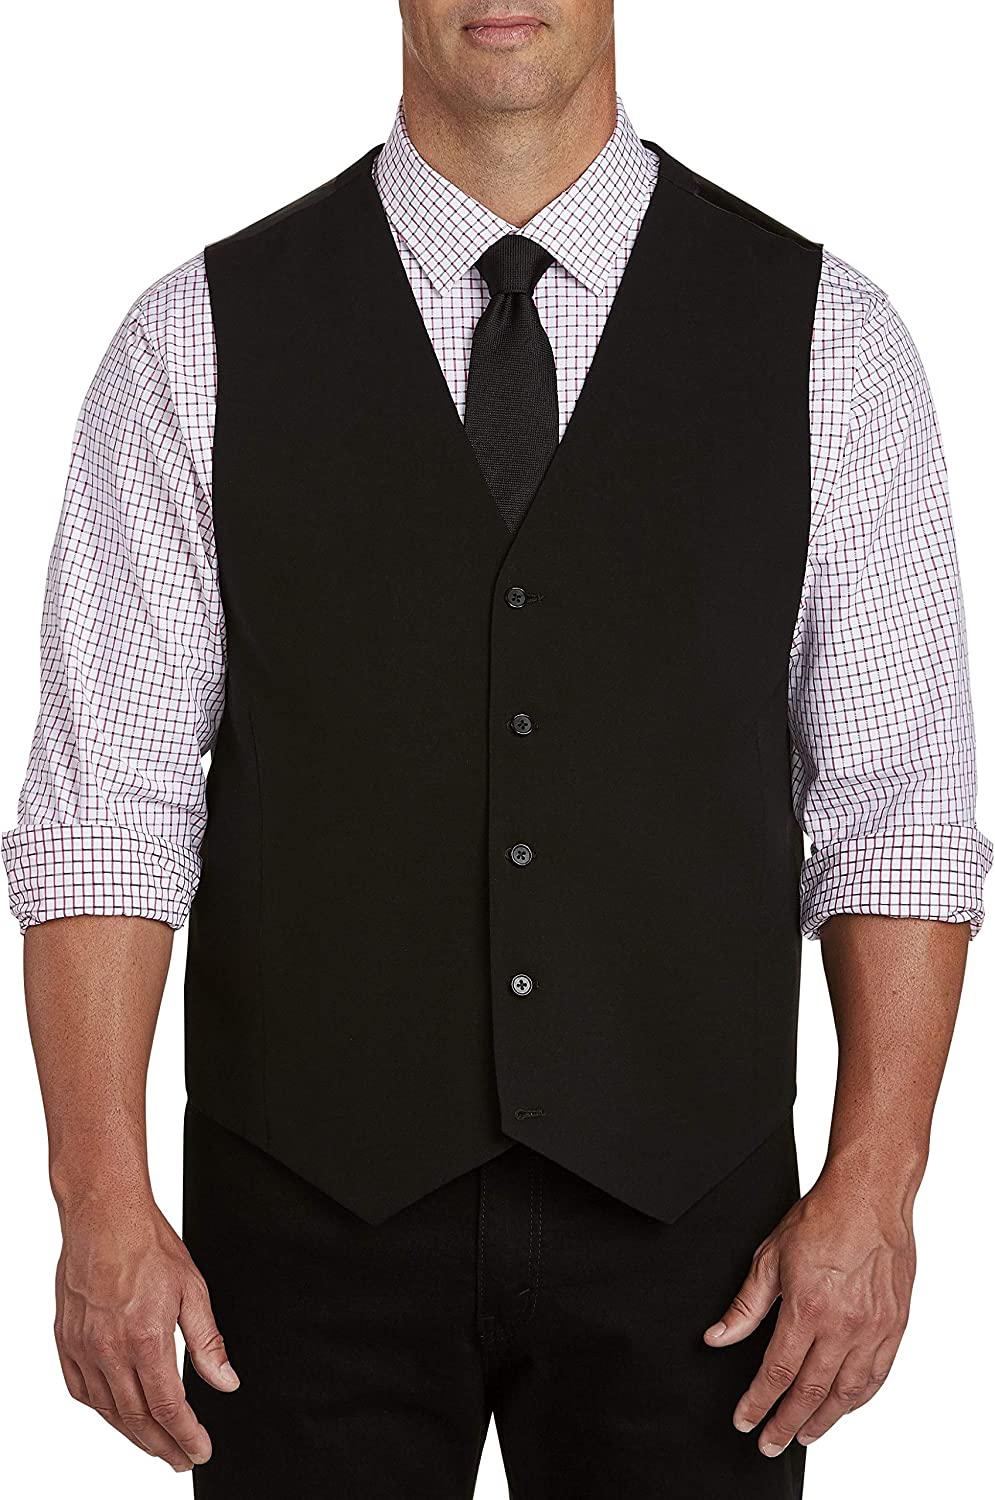 Synrgy by DXL Big and Tall Vest, Black